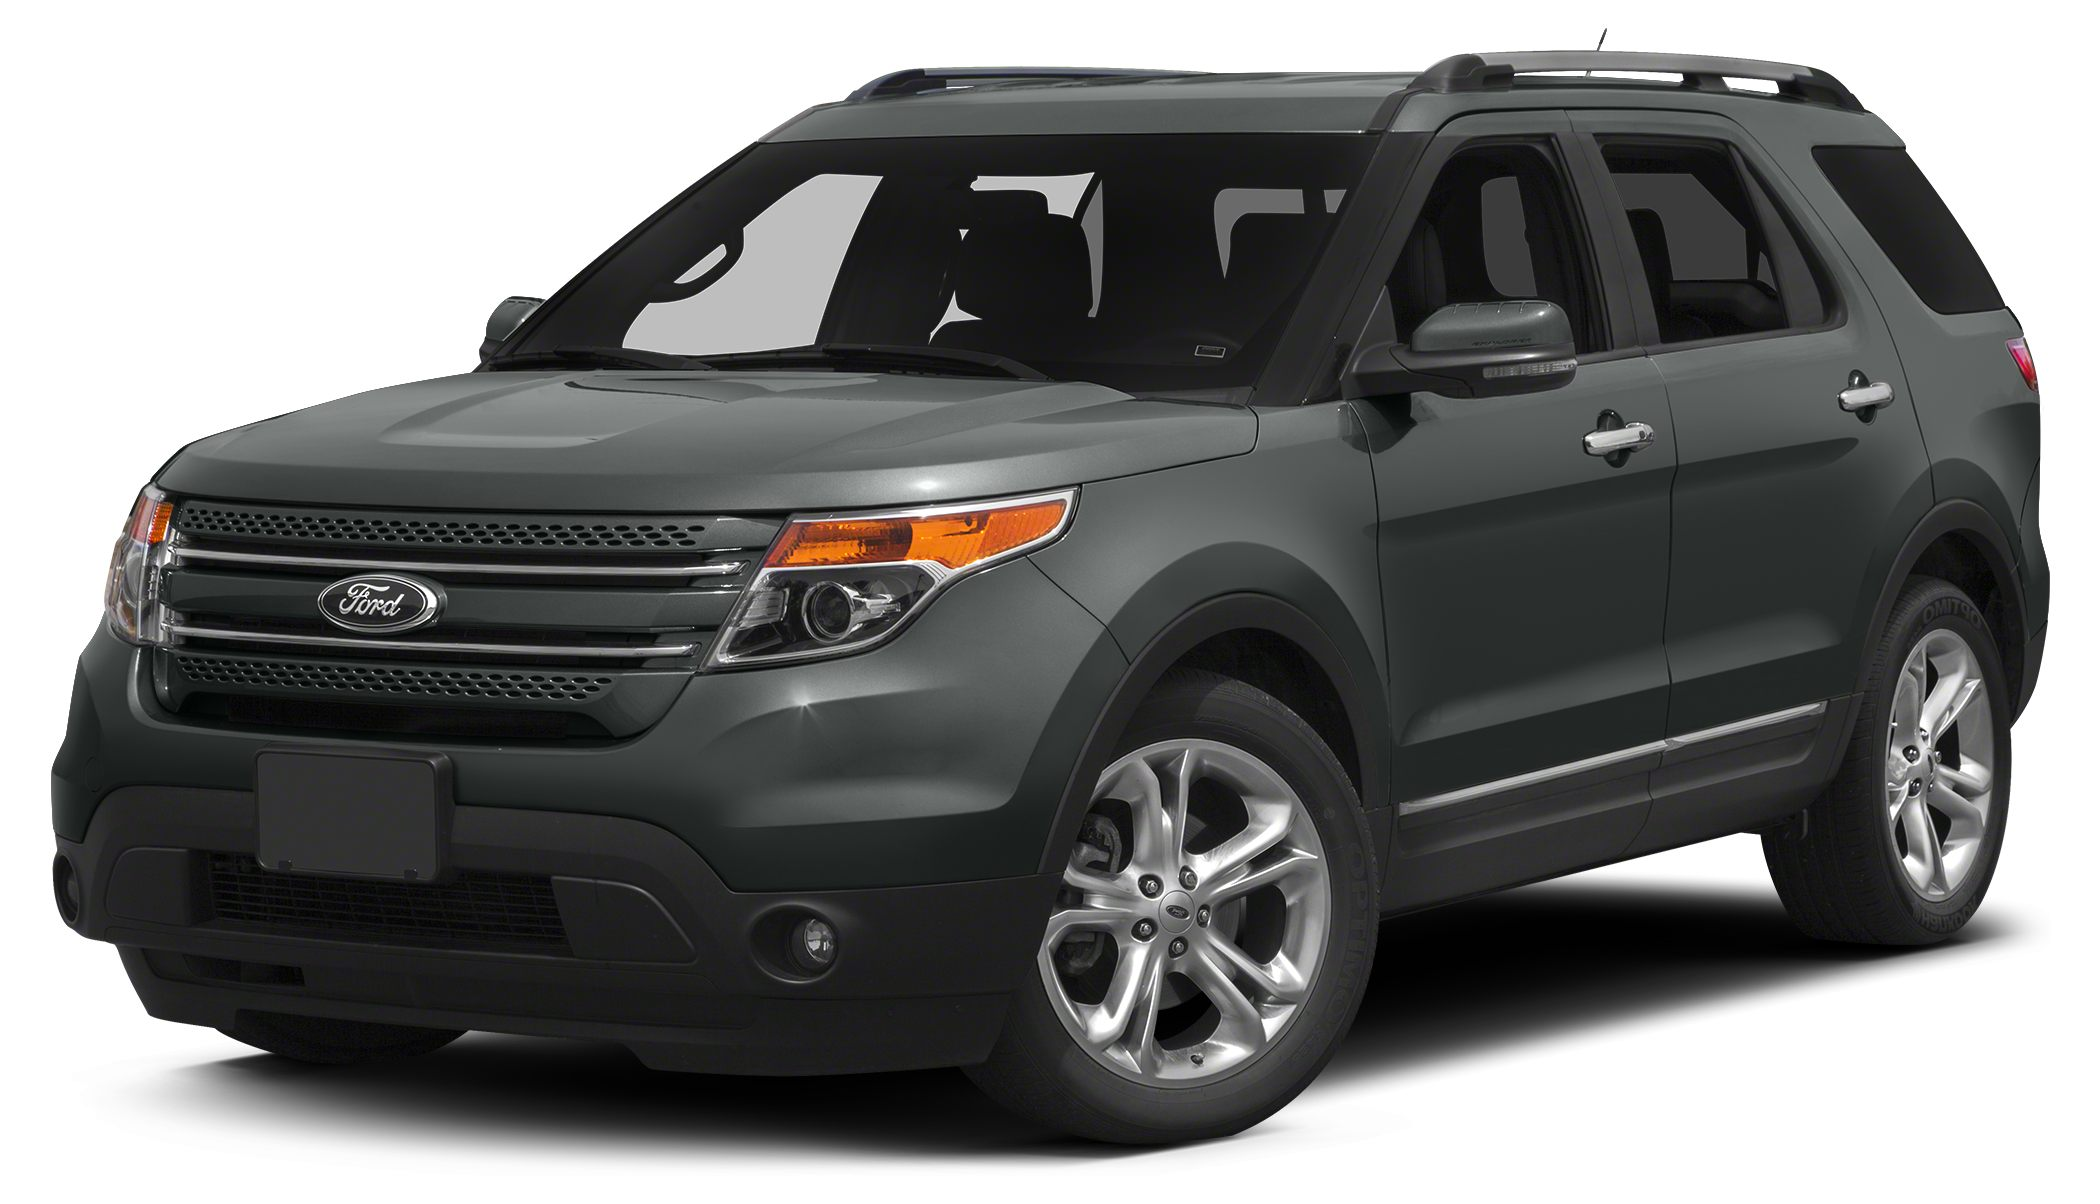 2013 Ford Explorer Limited Take command of the road in the 2013 Ford Explorer It offers the lates